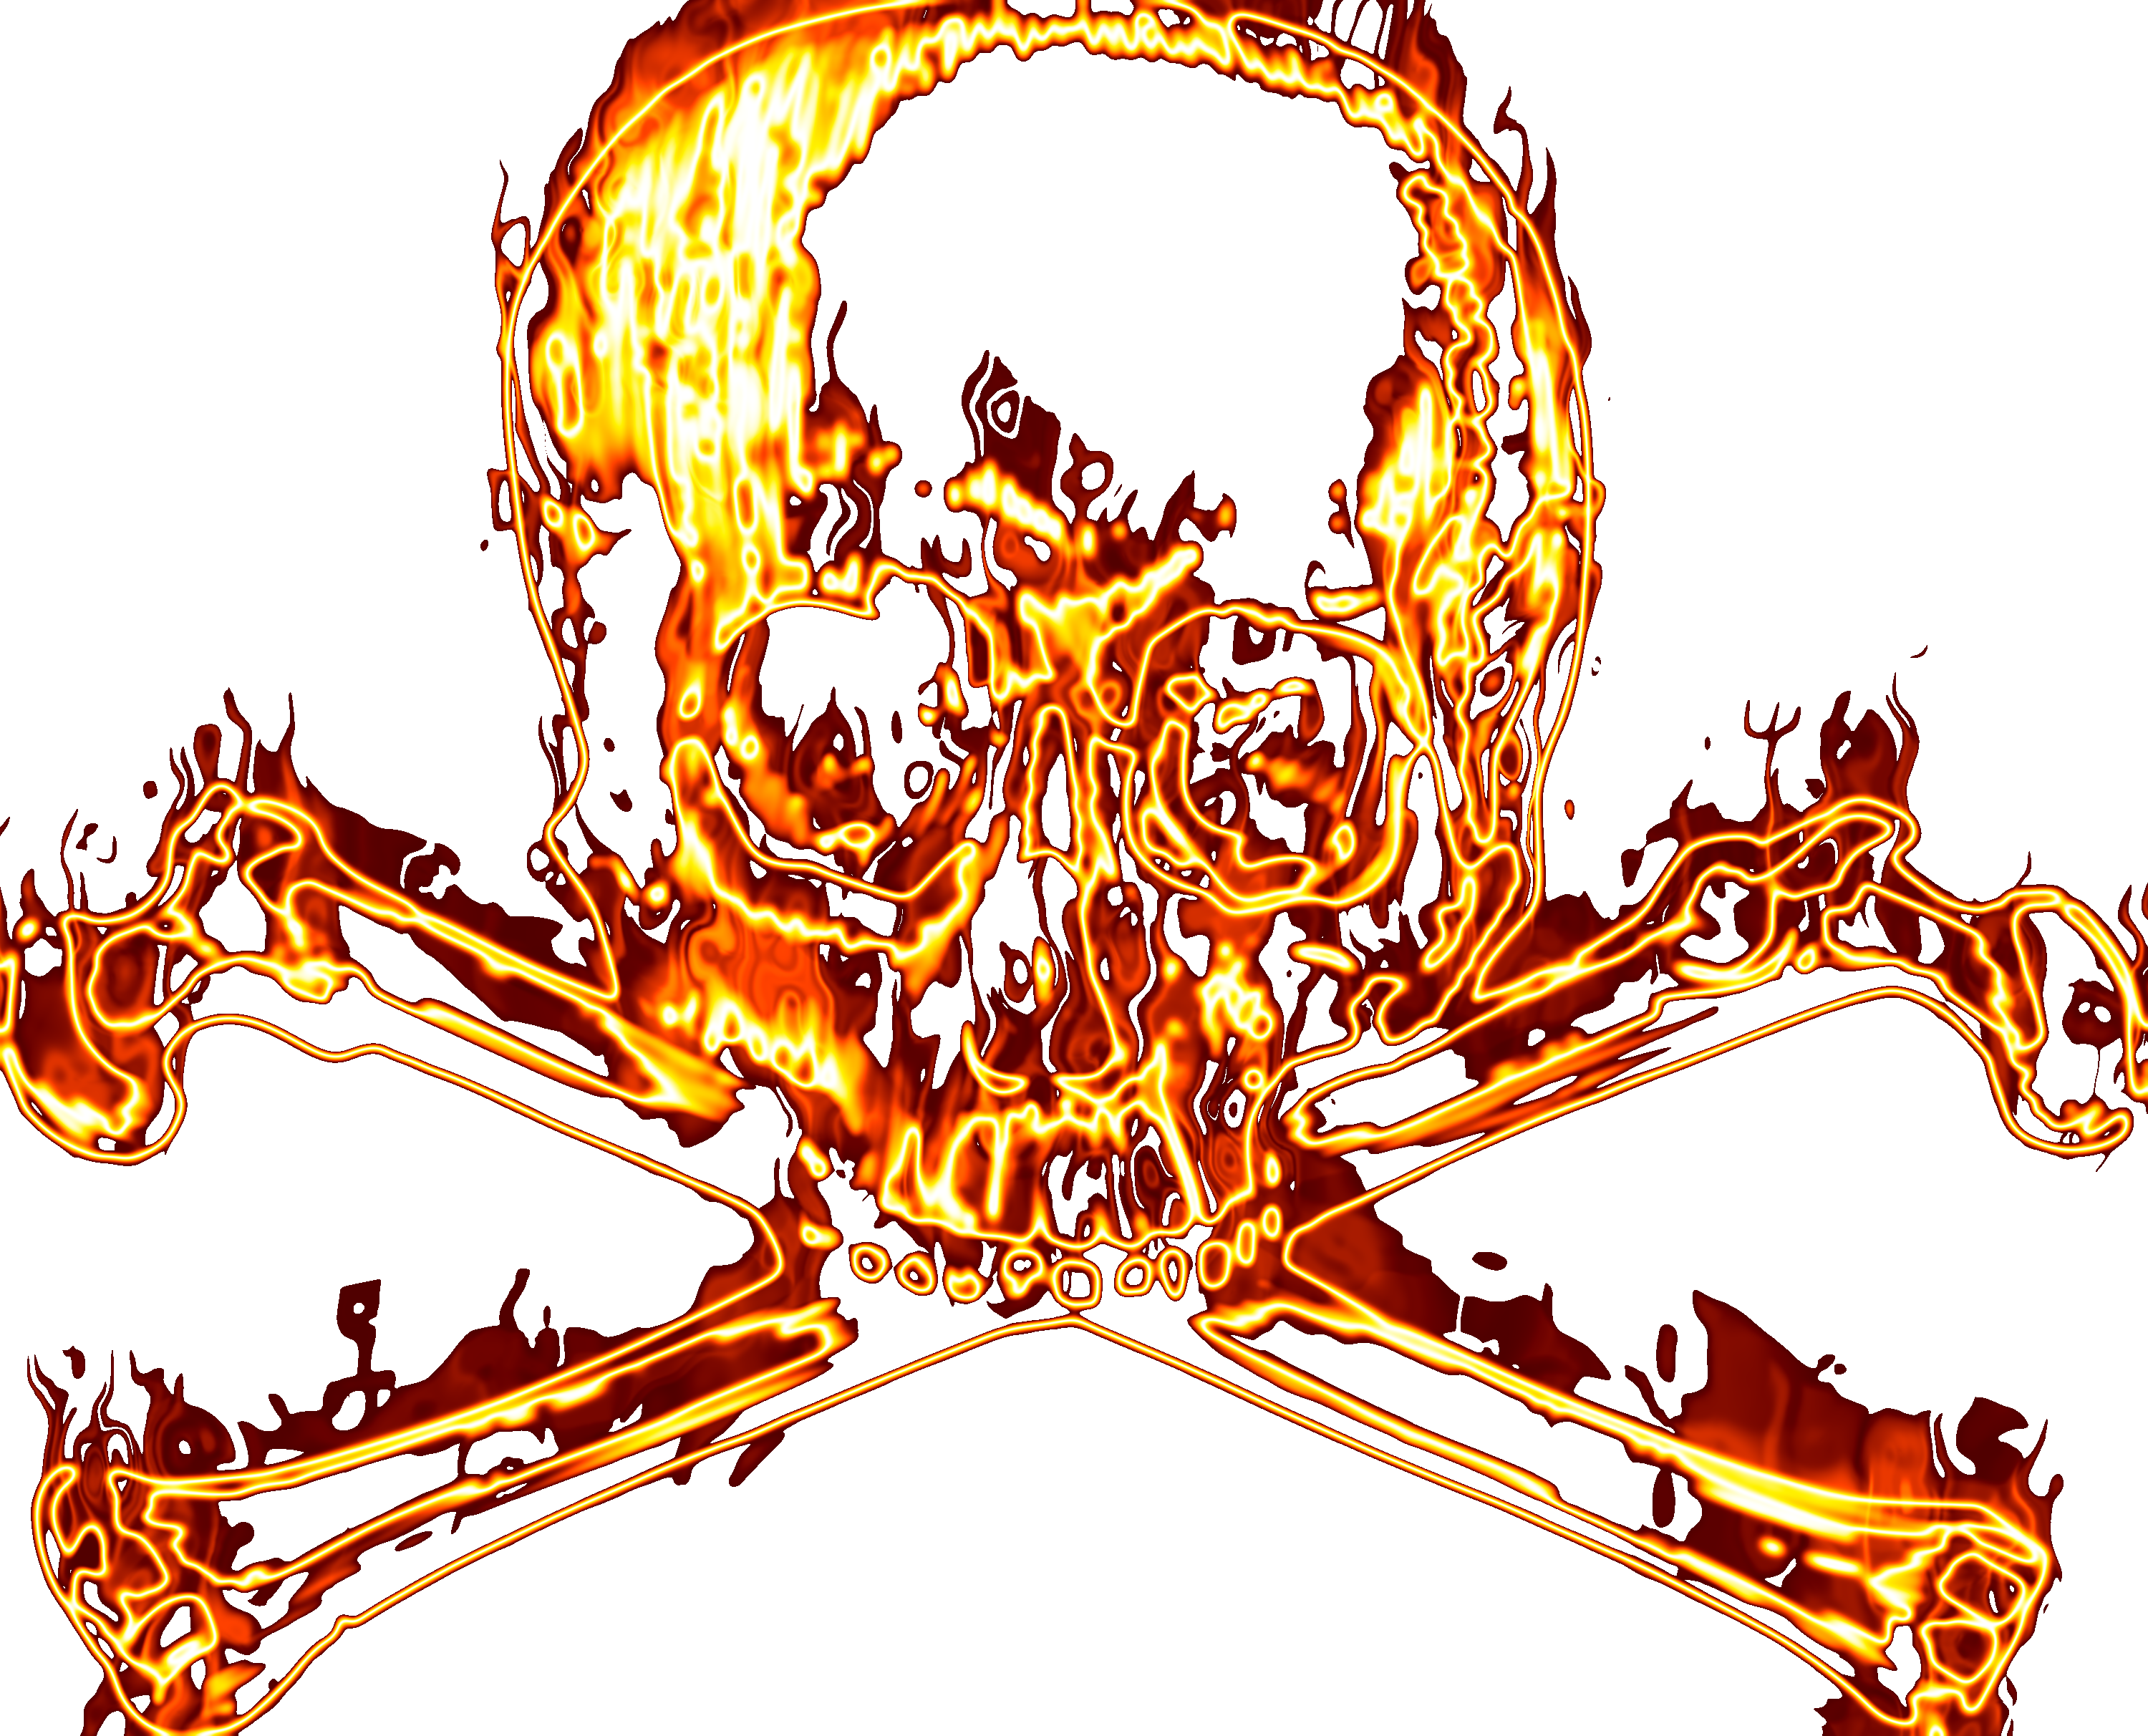 Pirate and images ship. Flames clipart fire symbol